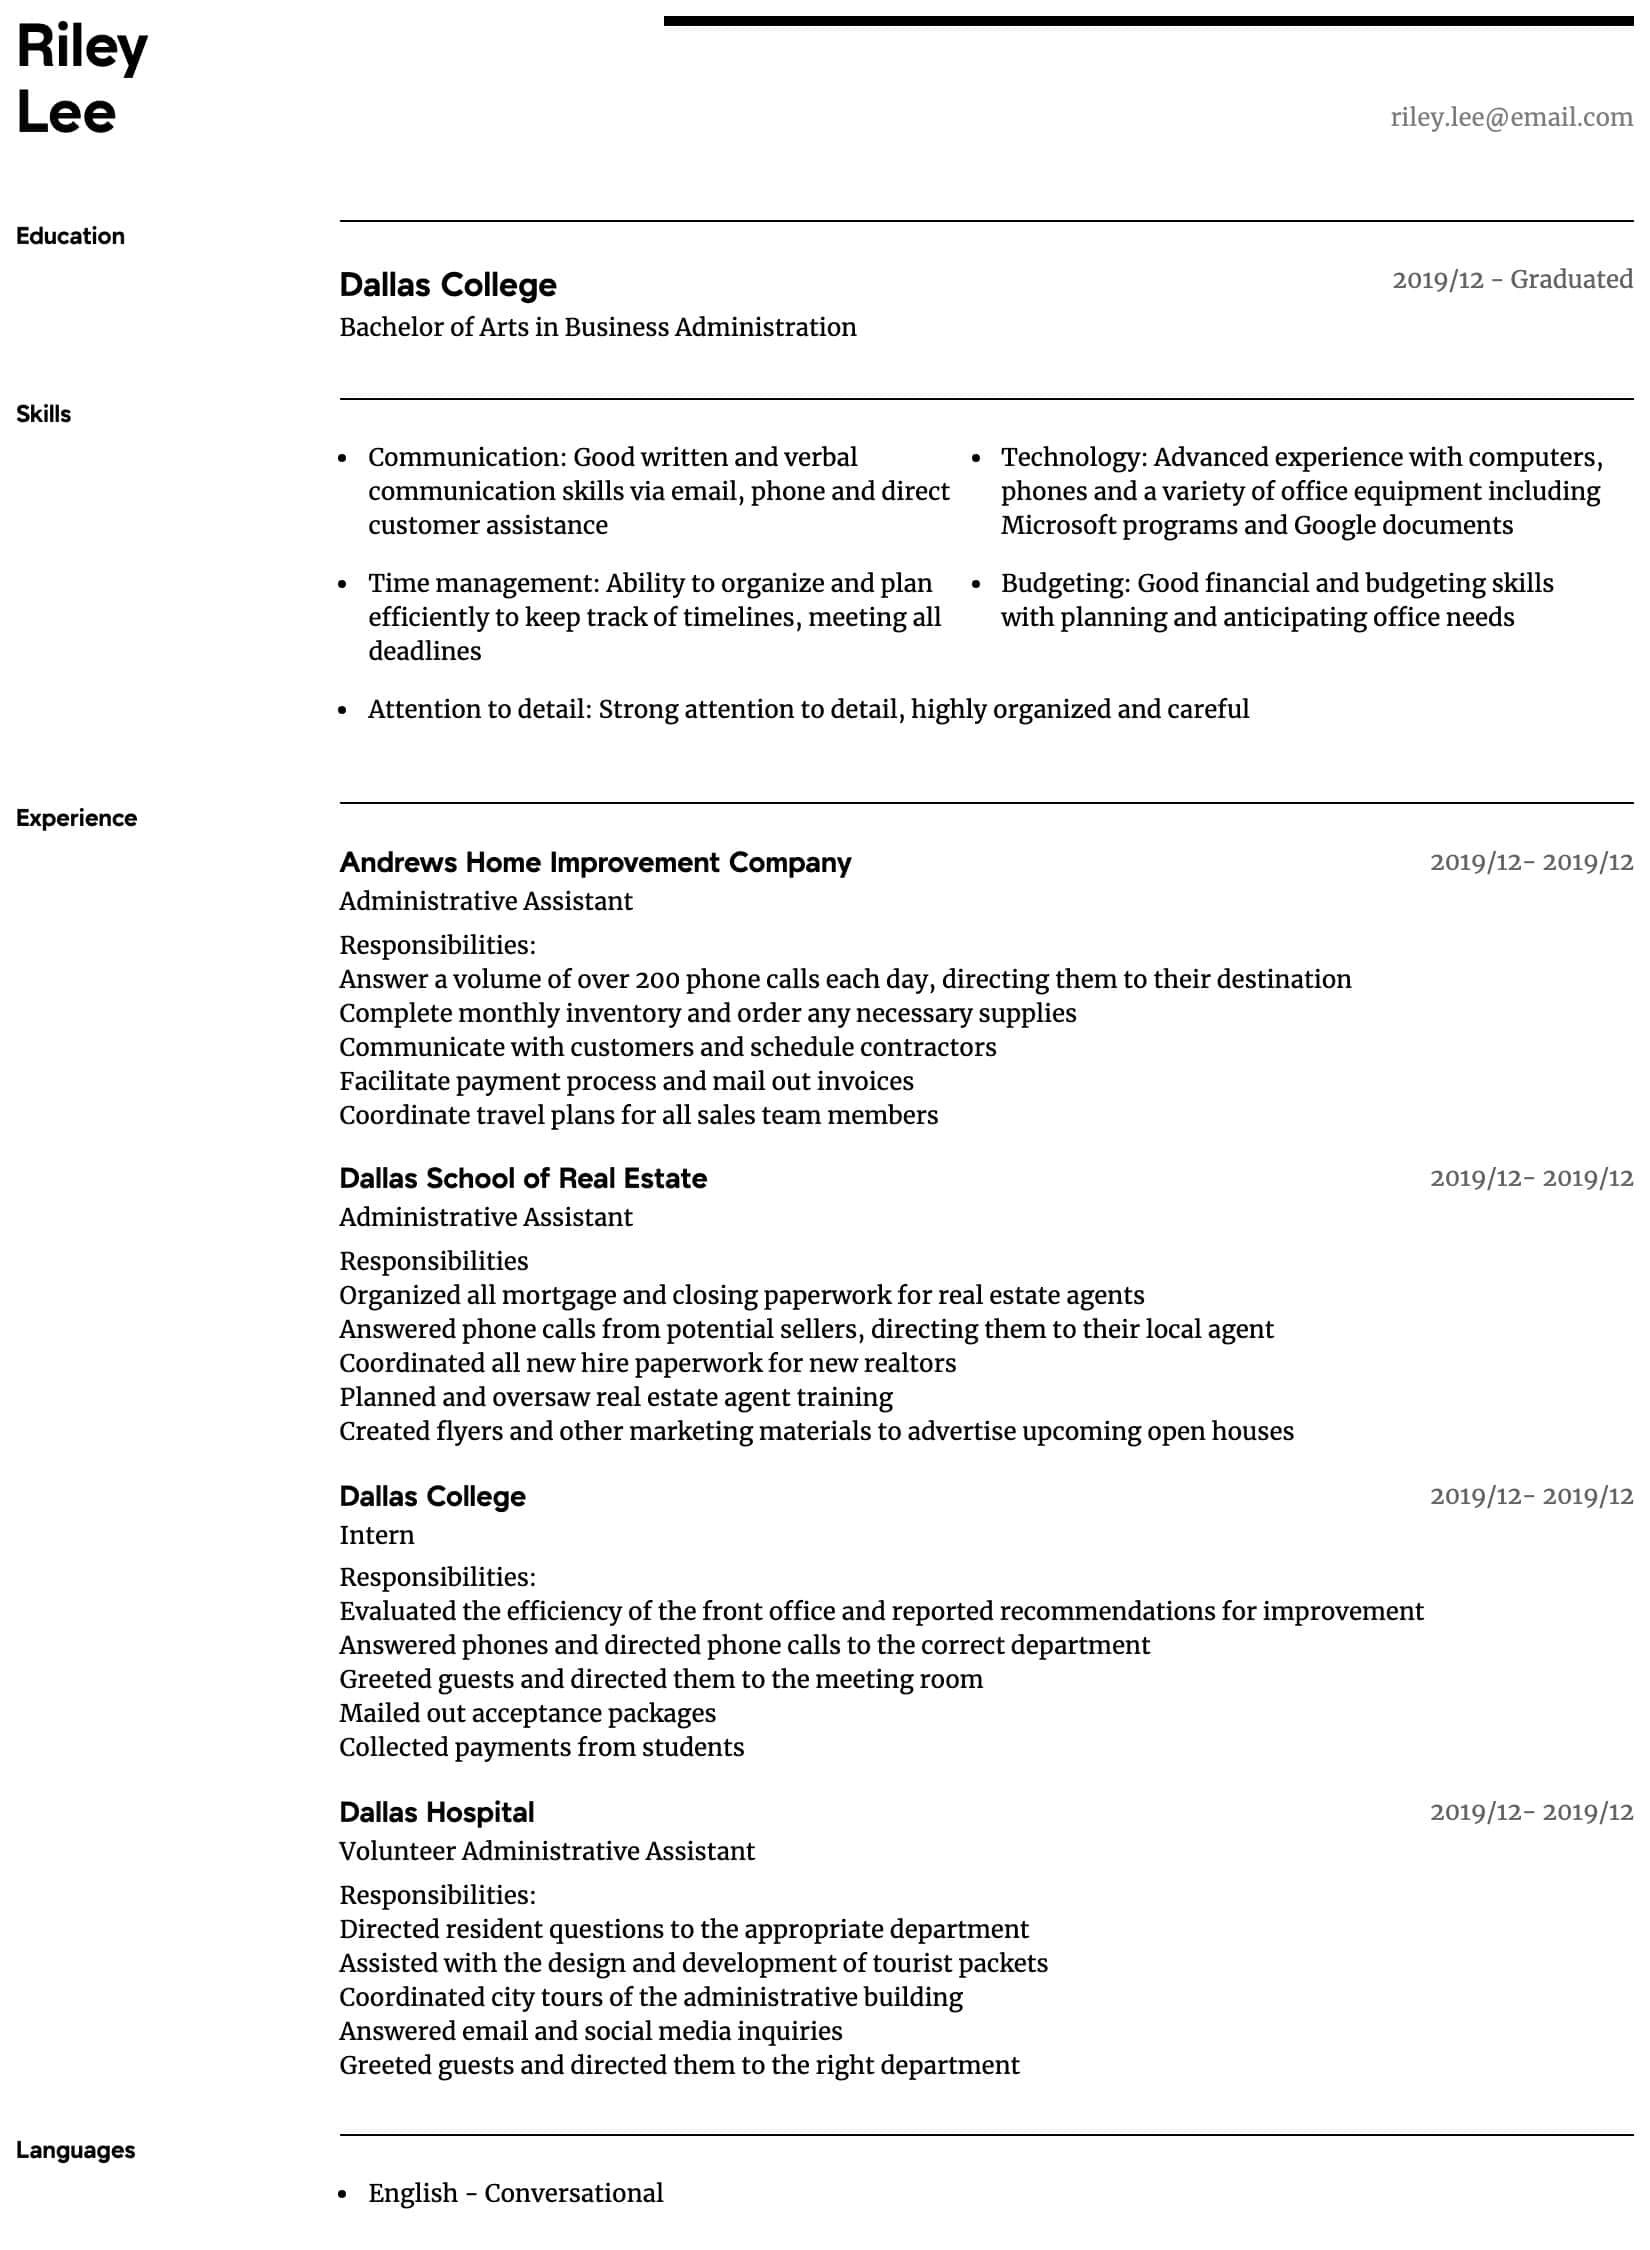 administrative assistant resume samples all experience levels admin objective sample Resume Admin Assistant Objective Resume Sample